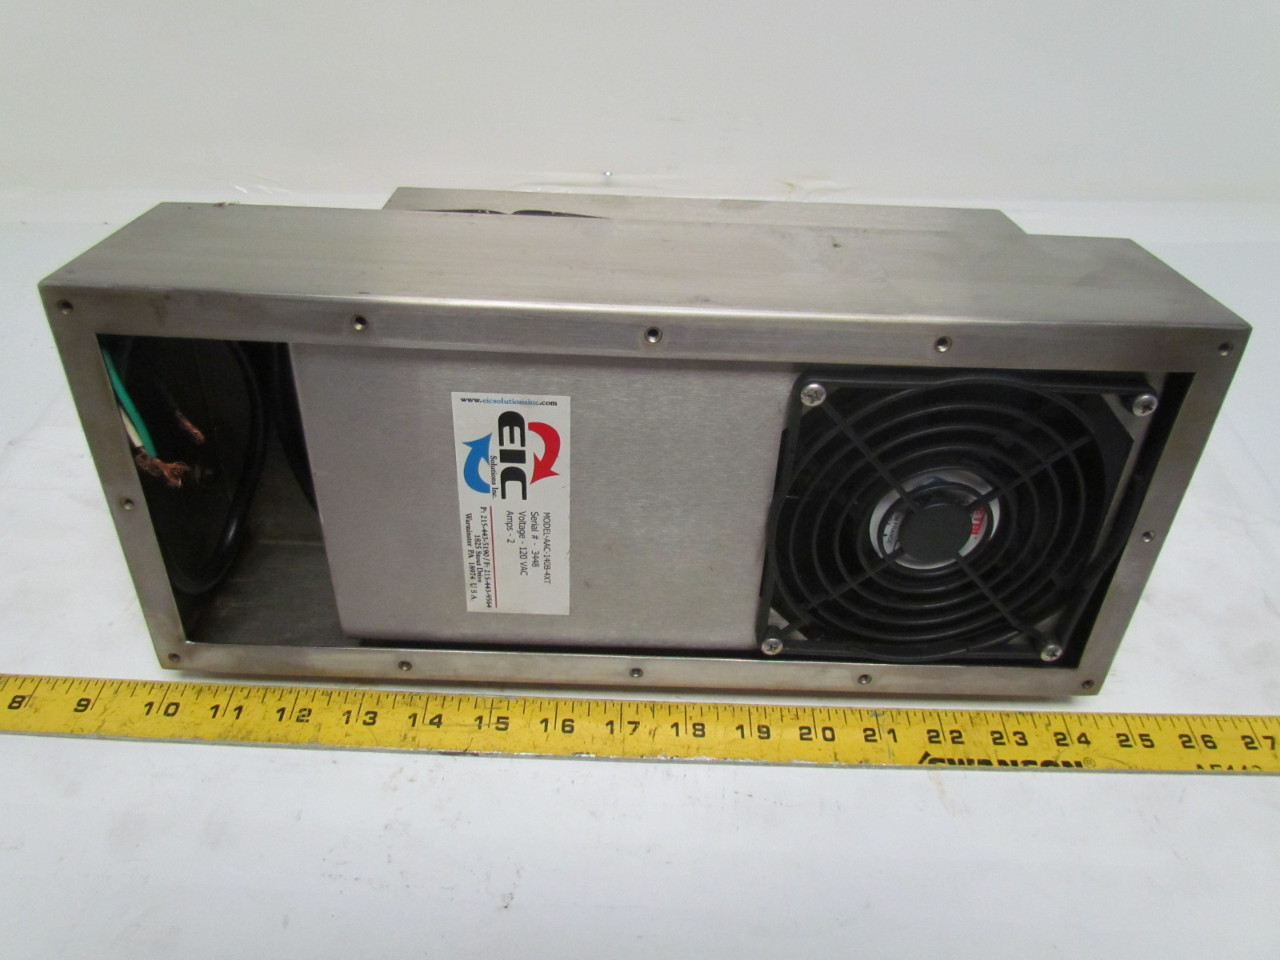 Eic solutions aac 140b 4xt thermoelectric air conditioner for 120v window air conditioner